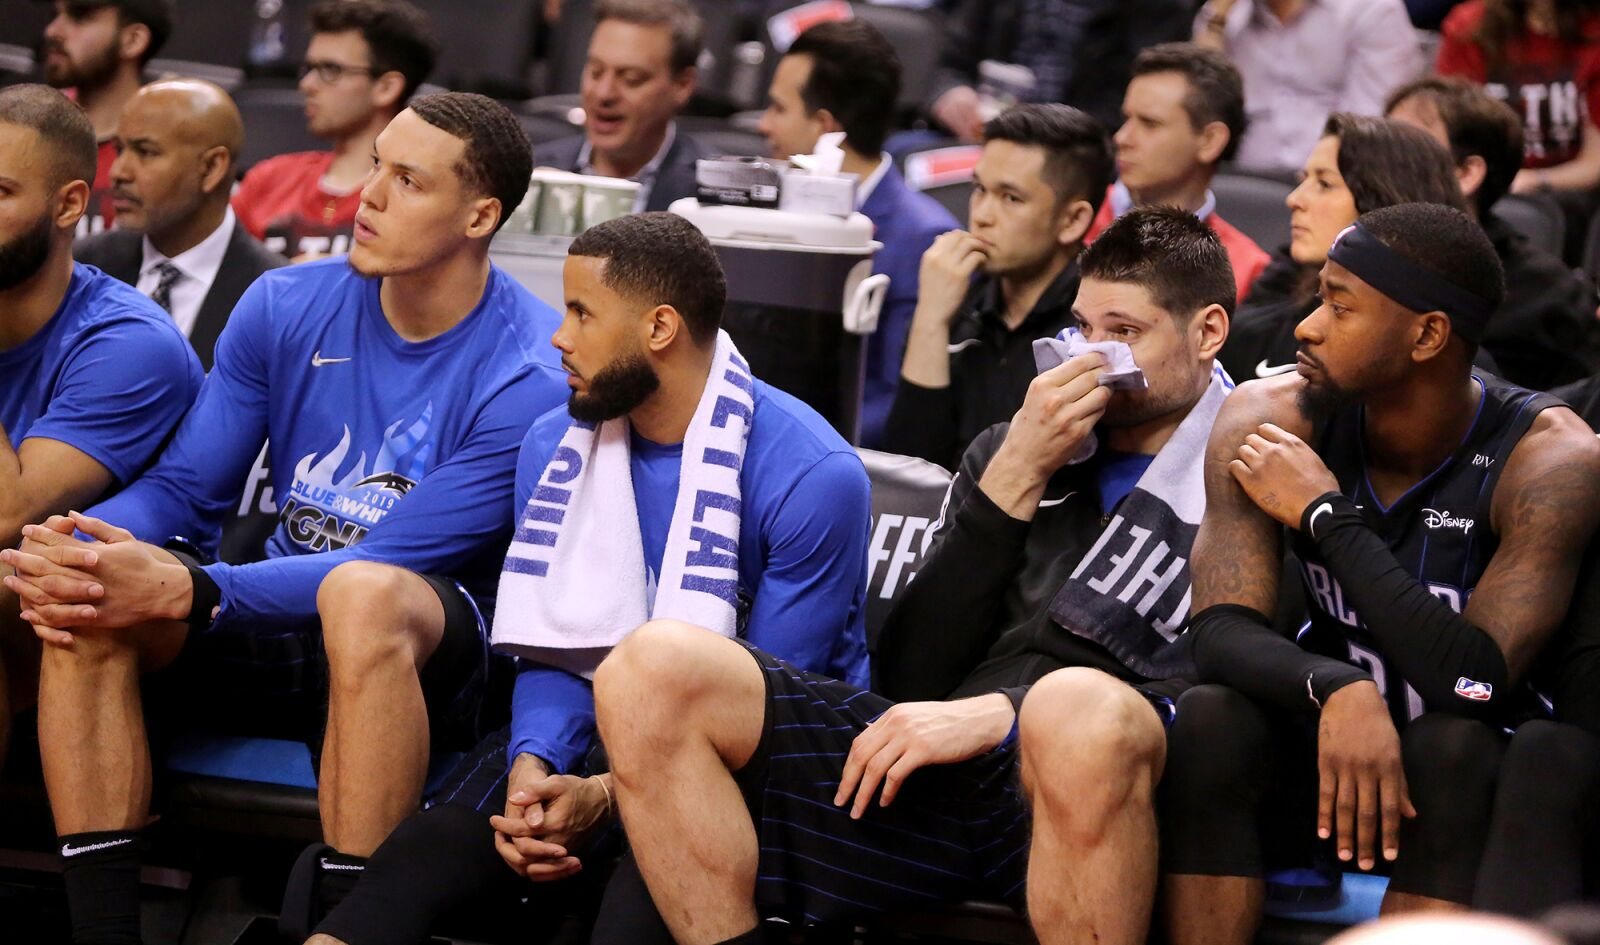 Orlando Magic: 3 ways to build on playoff appearance in 2019-20